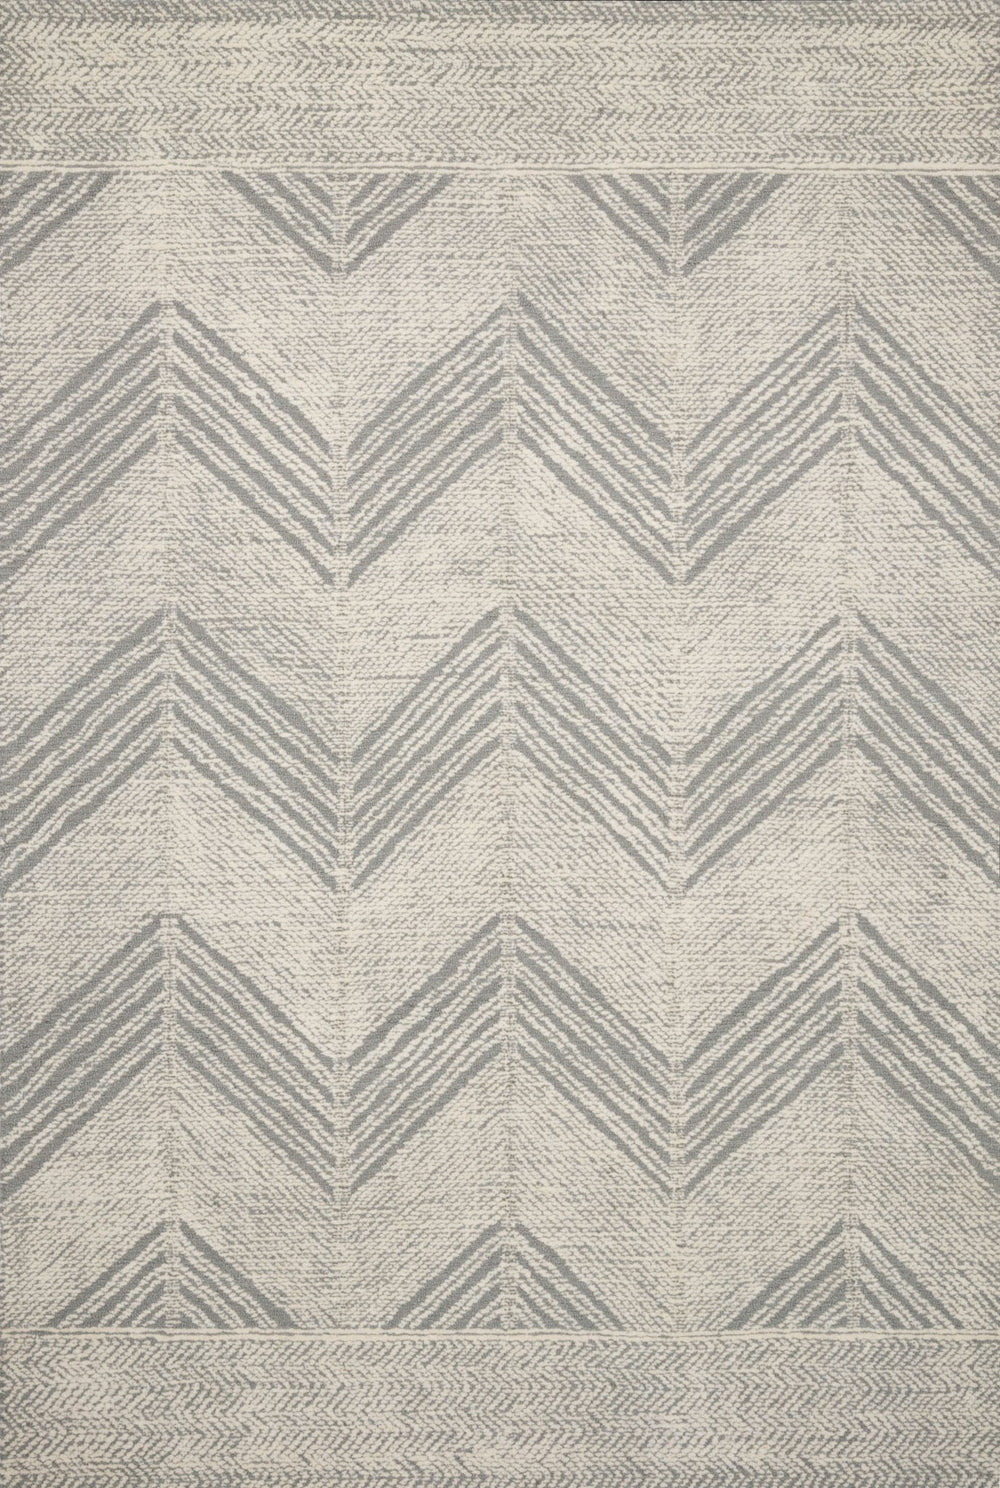 With stunning and delicate linear patterns, the Kopa Collection provides an energetic and fresh canvas for a low profile, long-lasting 100% wool rug. Each design is hand-tufted by skilled artisans in India. Crafted by Loloi for ED Ellen DeGeneres.  Hand Tufted 100% Wool India KO-02 ED Grey/Ivory